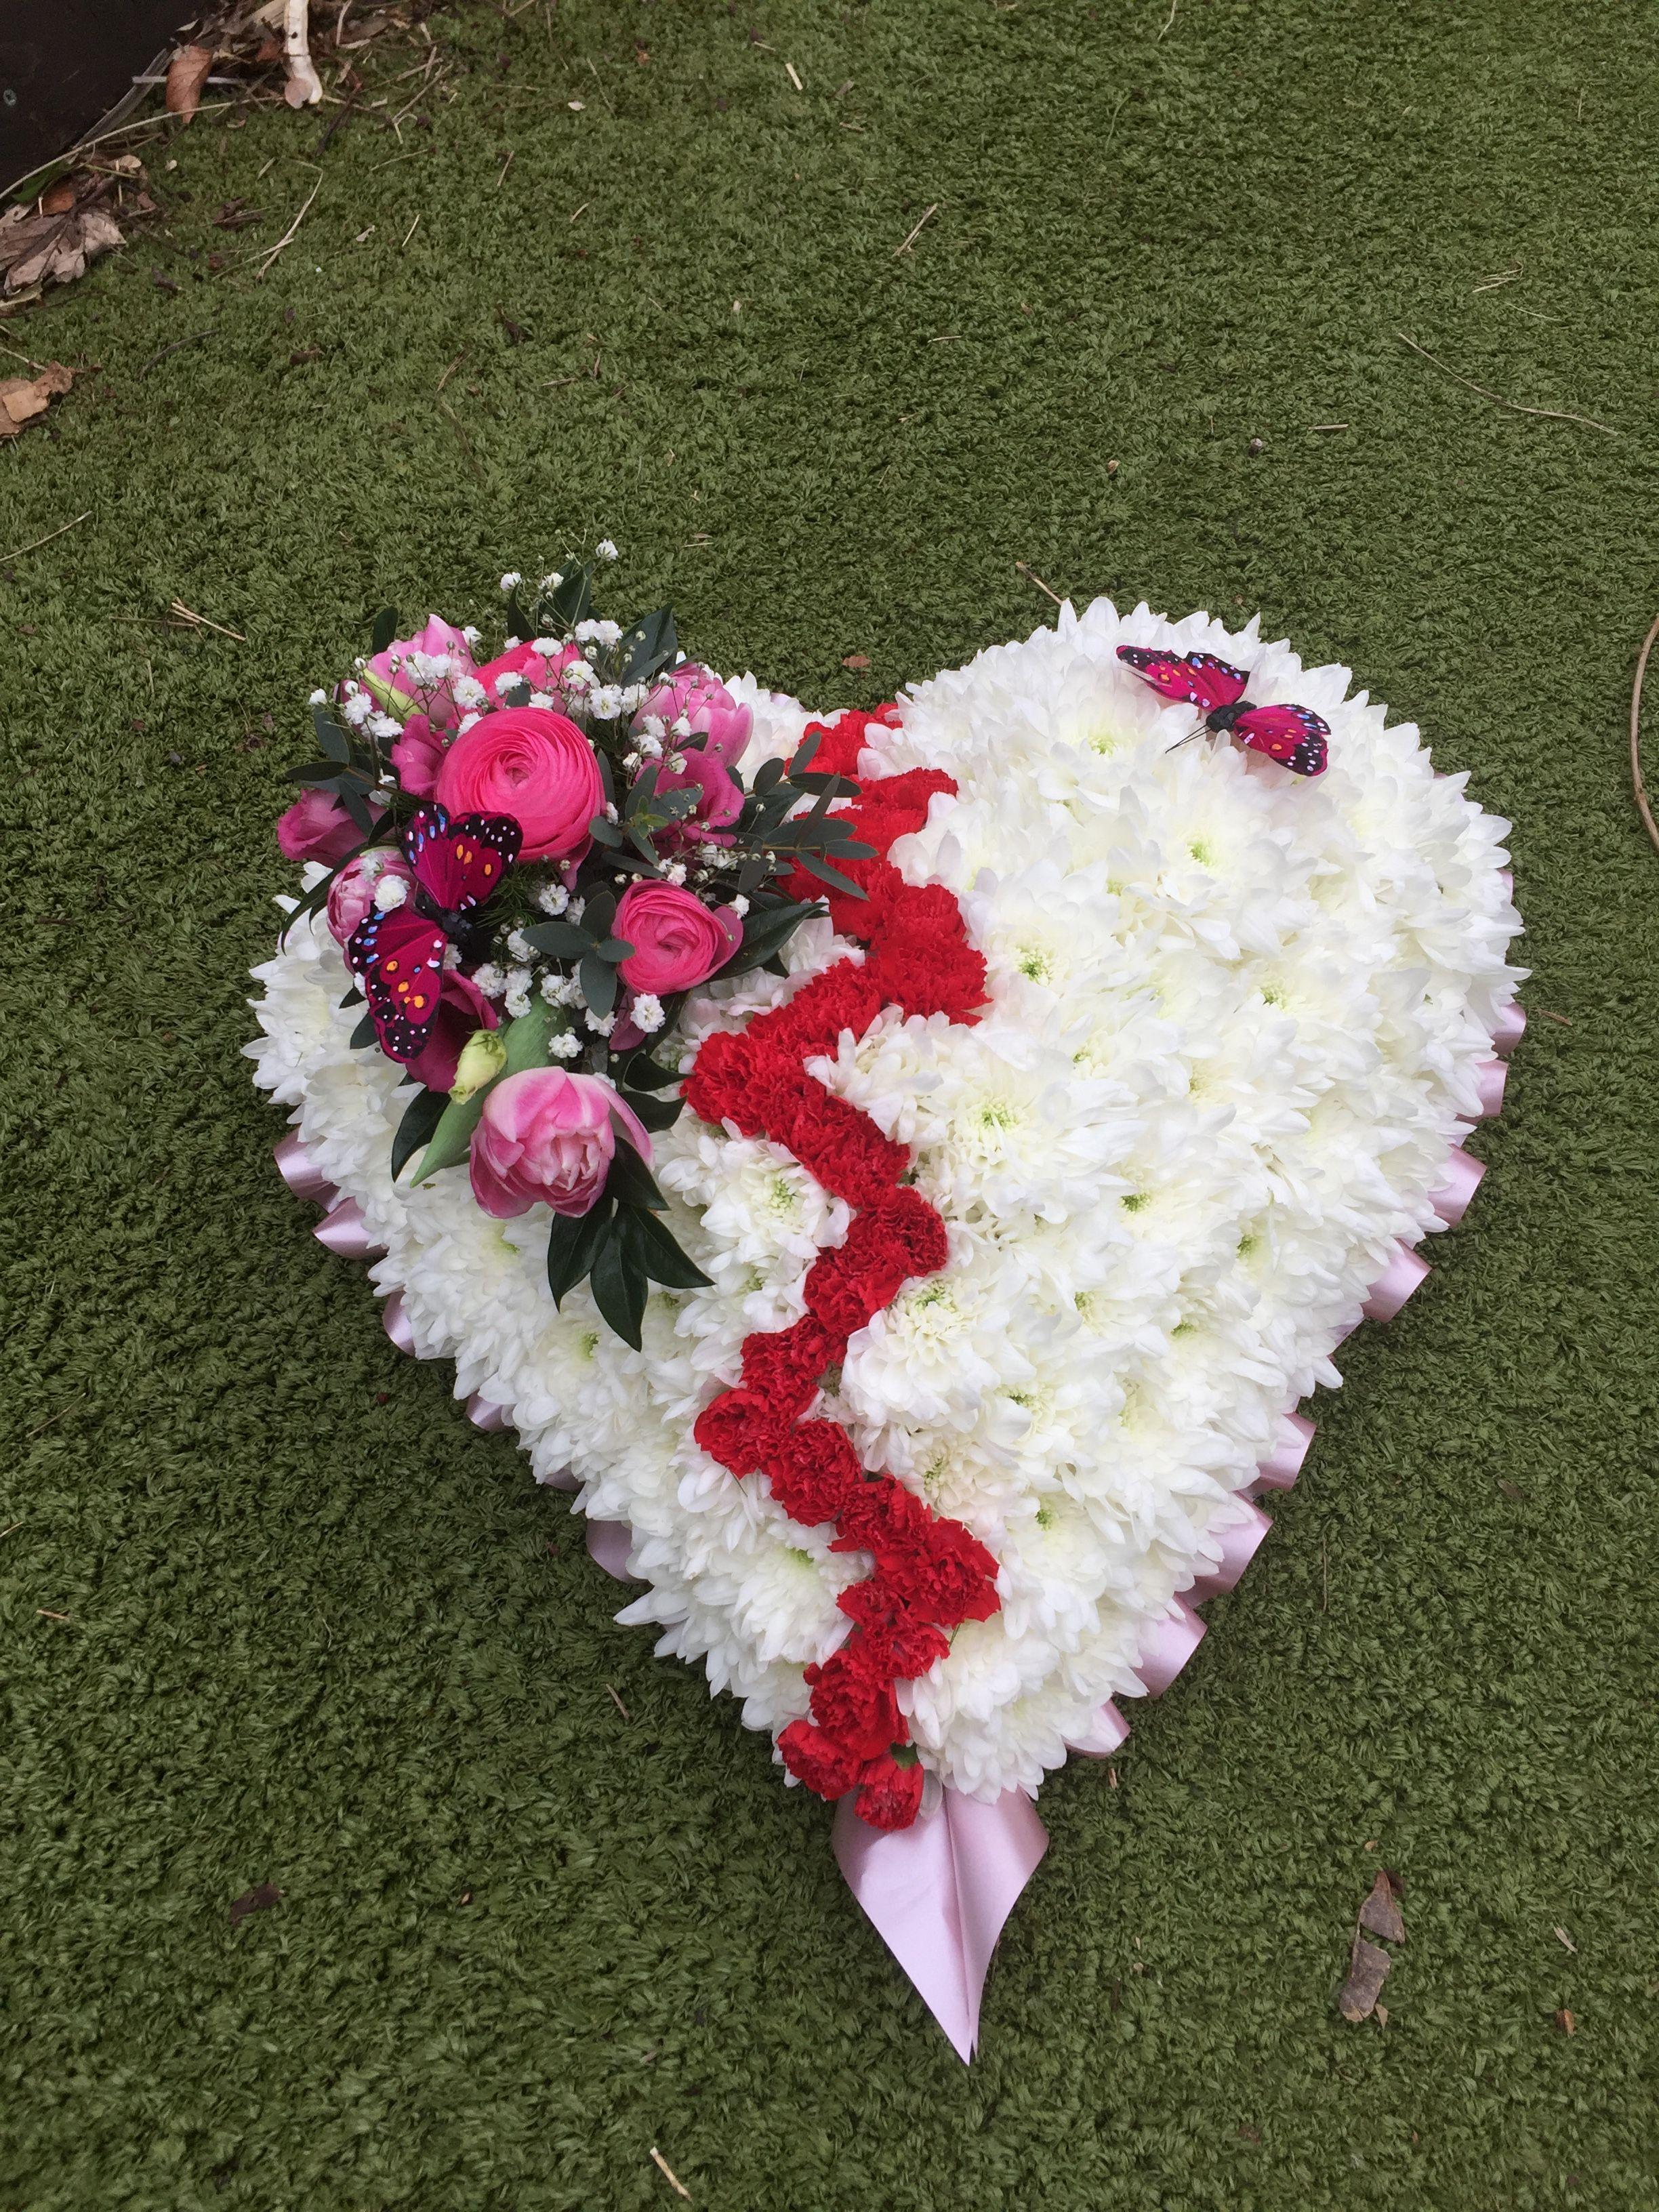 Broken Heart Funeral Tribute Funeral Flower S In 2018 Pinterest